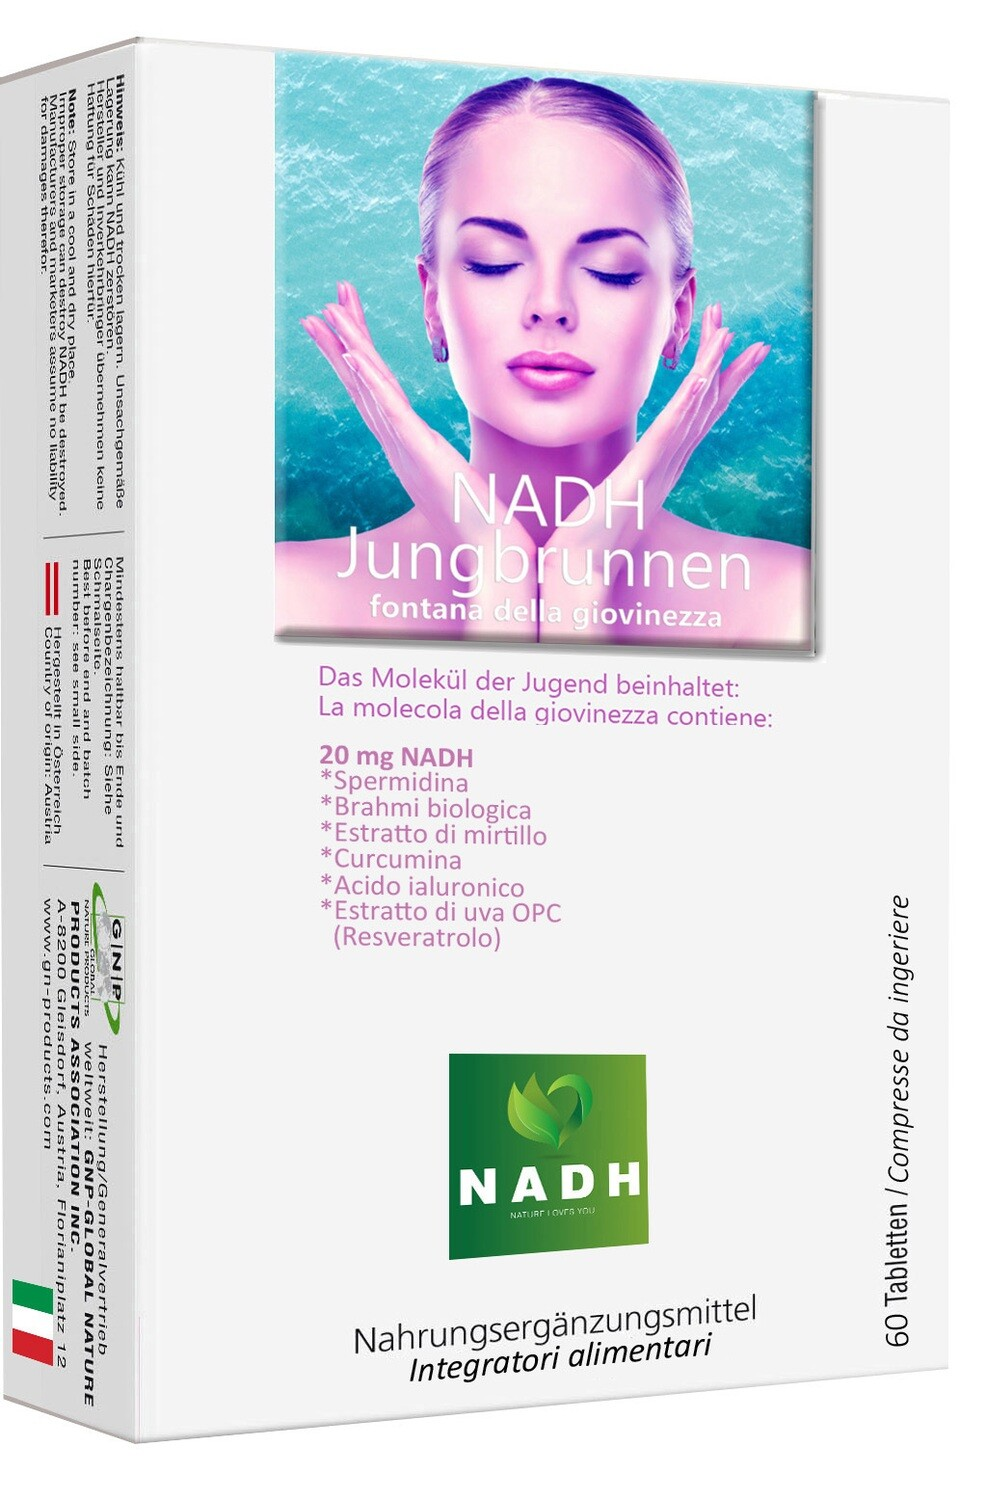 NADH JUNGBRUNNEN - Fountain of Youth